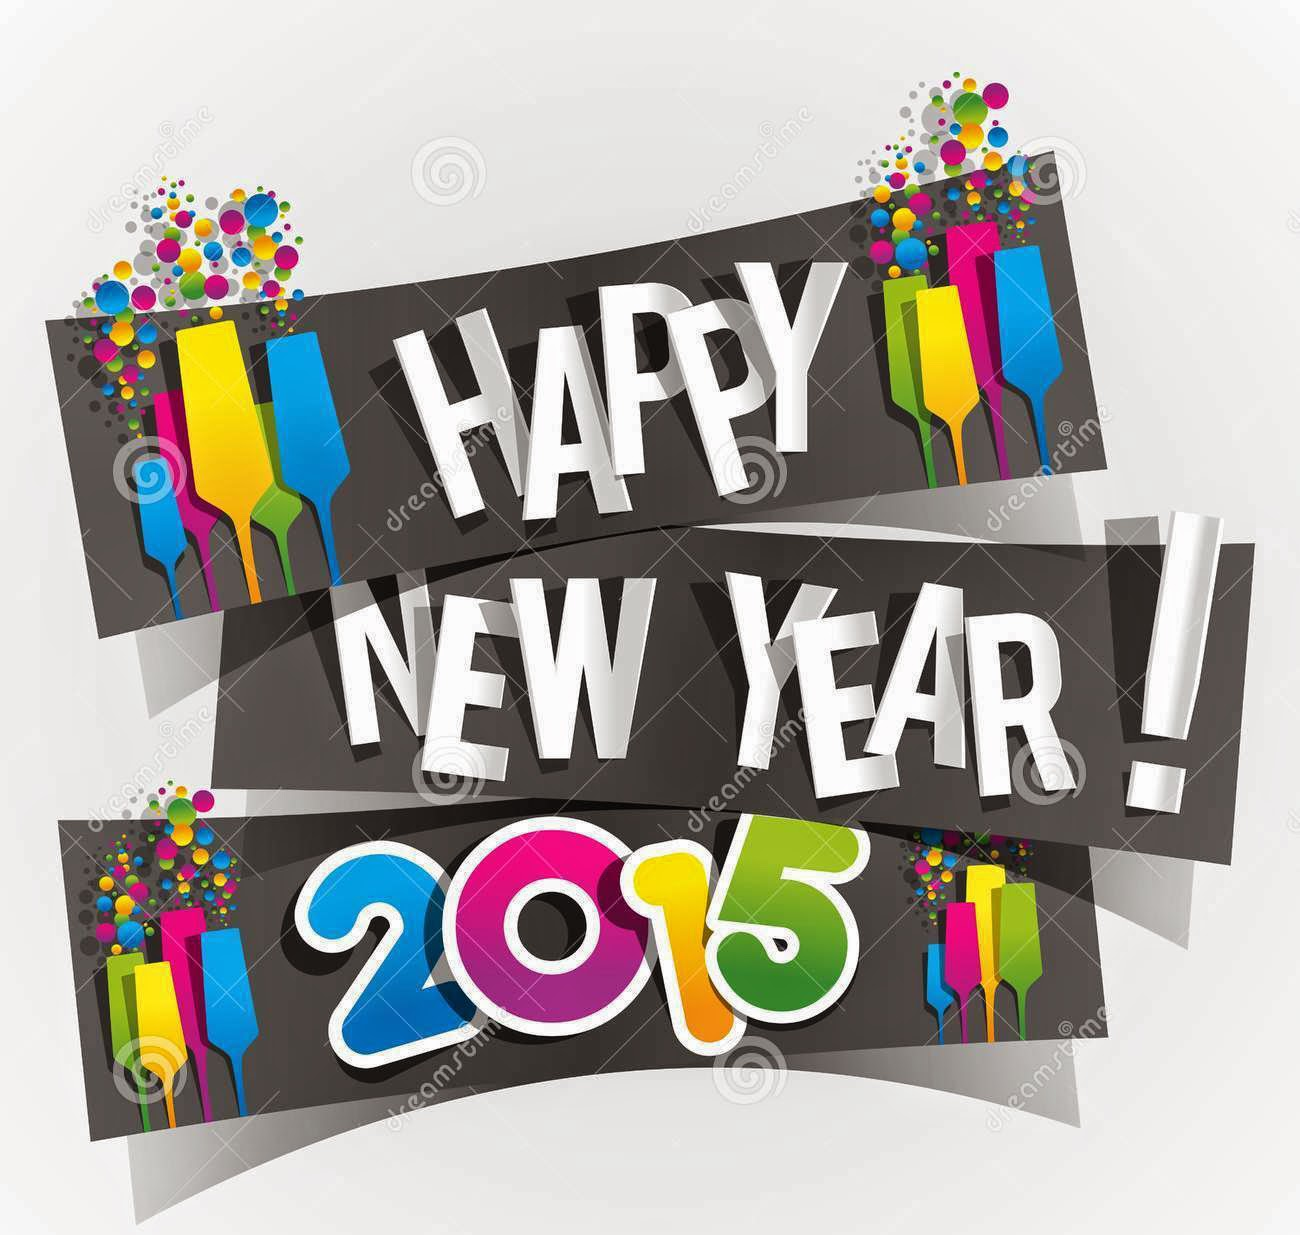 Greeting Happy New Year Wishes 2015 –Special Wishing Wallpapers